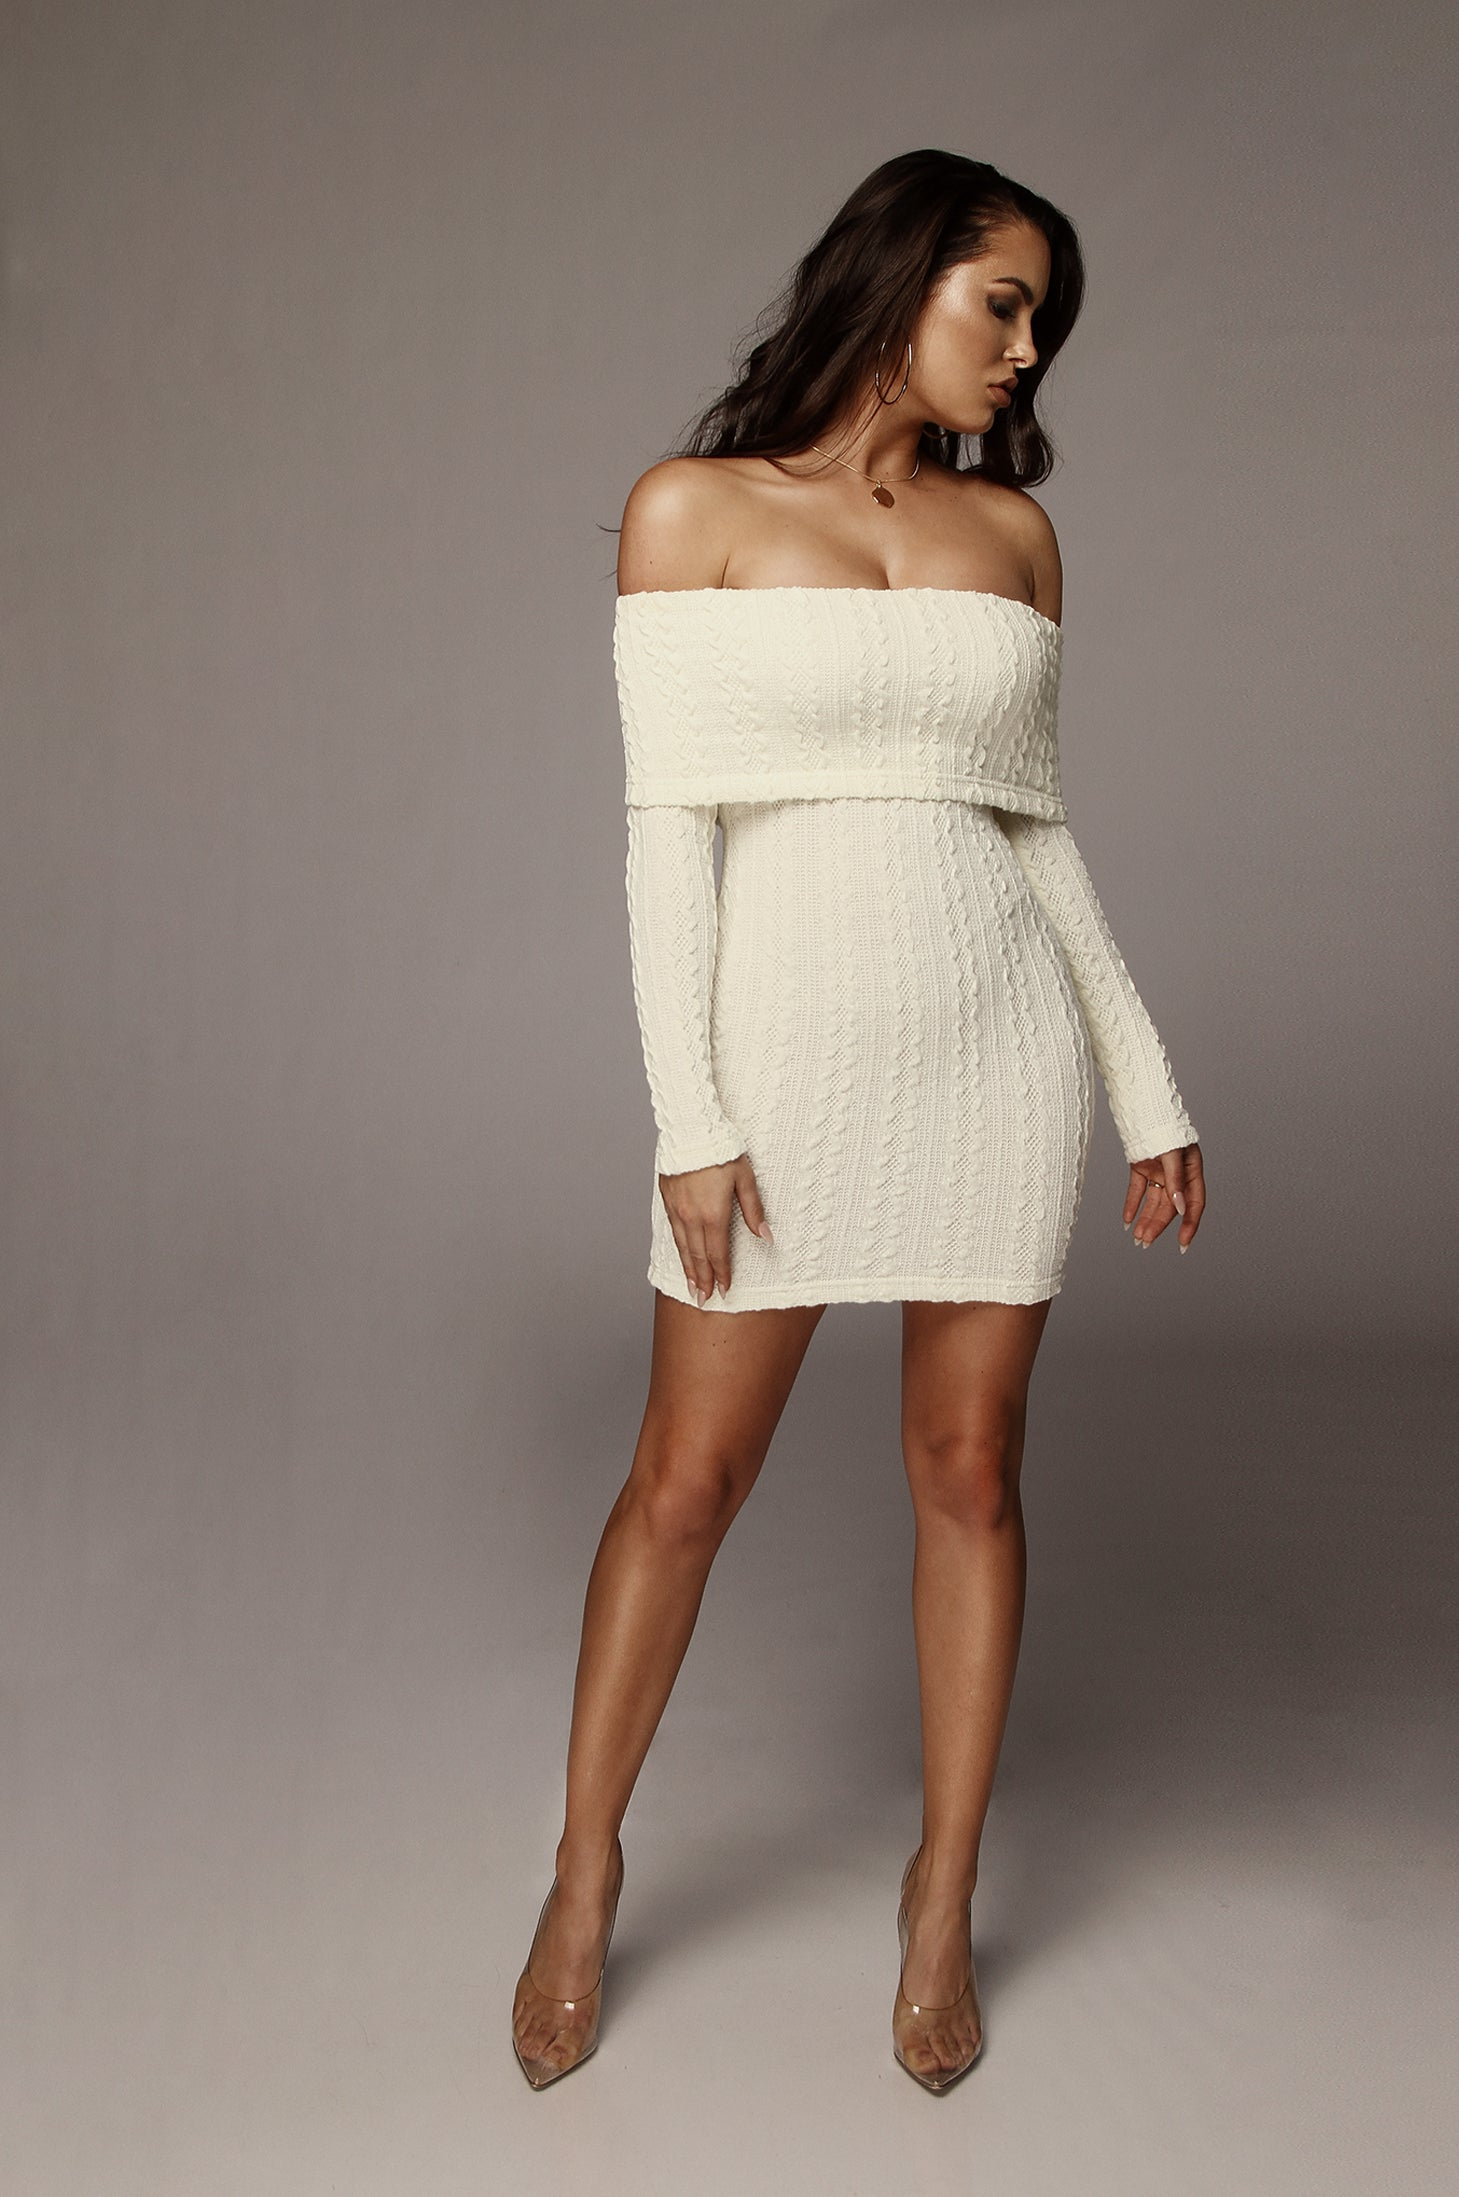 Ivory Layla Cable Knit Dress – JLUXLABEL d3f9f0225